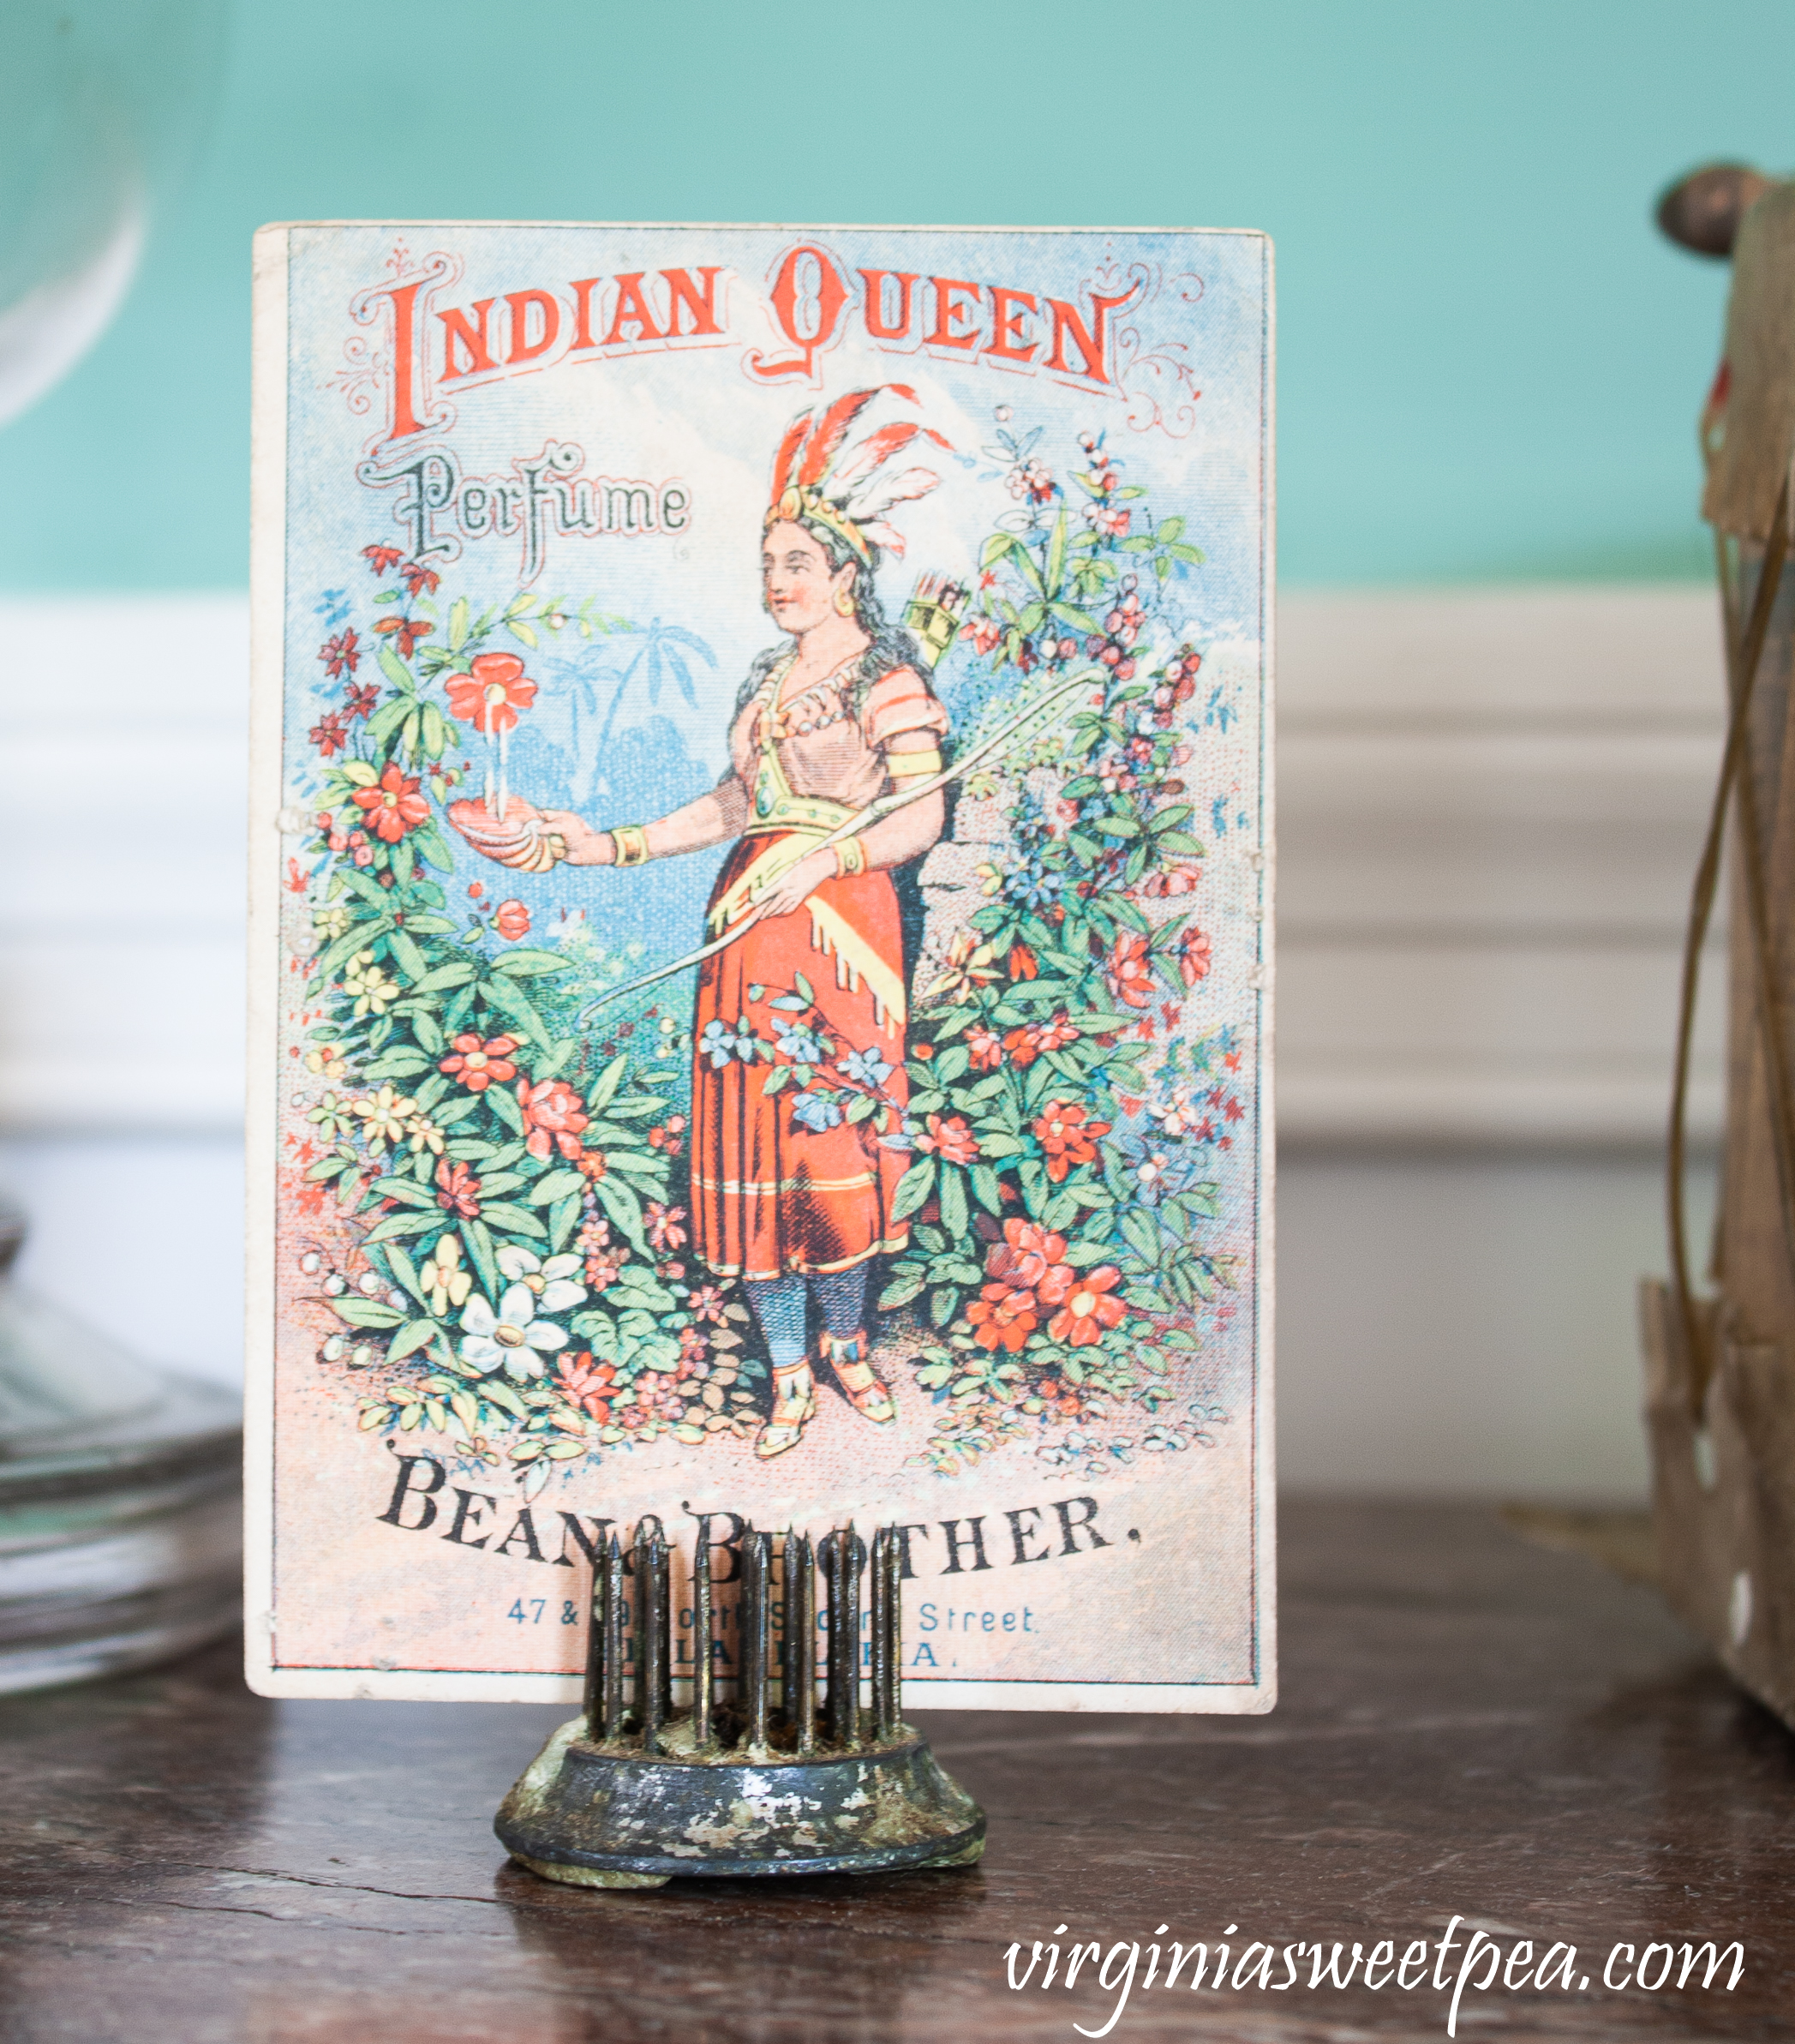 Bean & Brother Indian Queen Perfume Ad